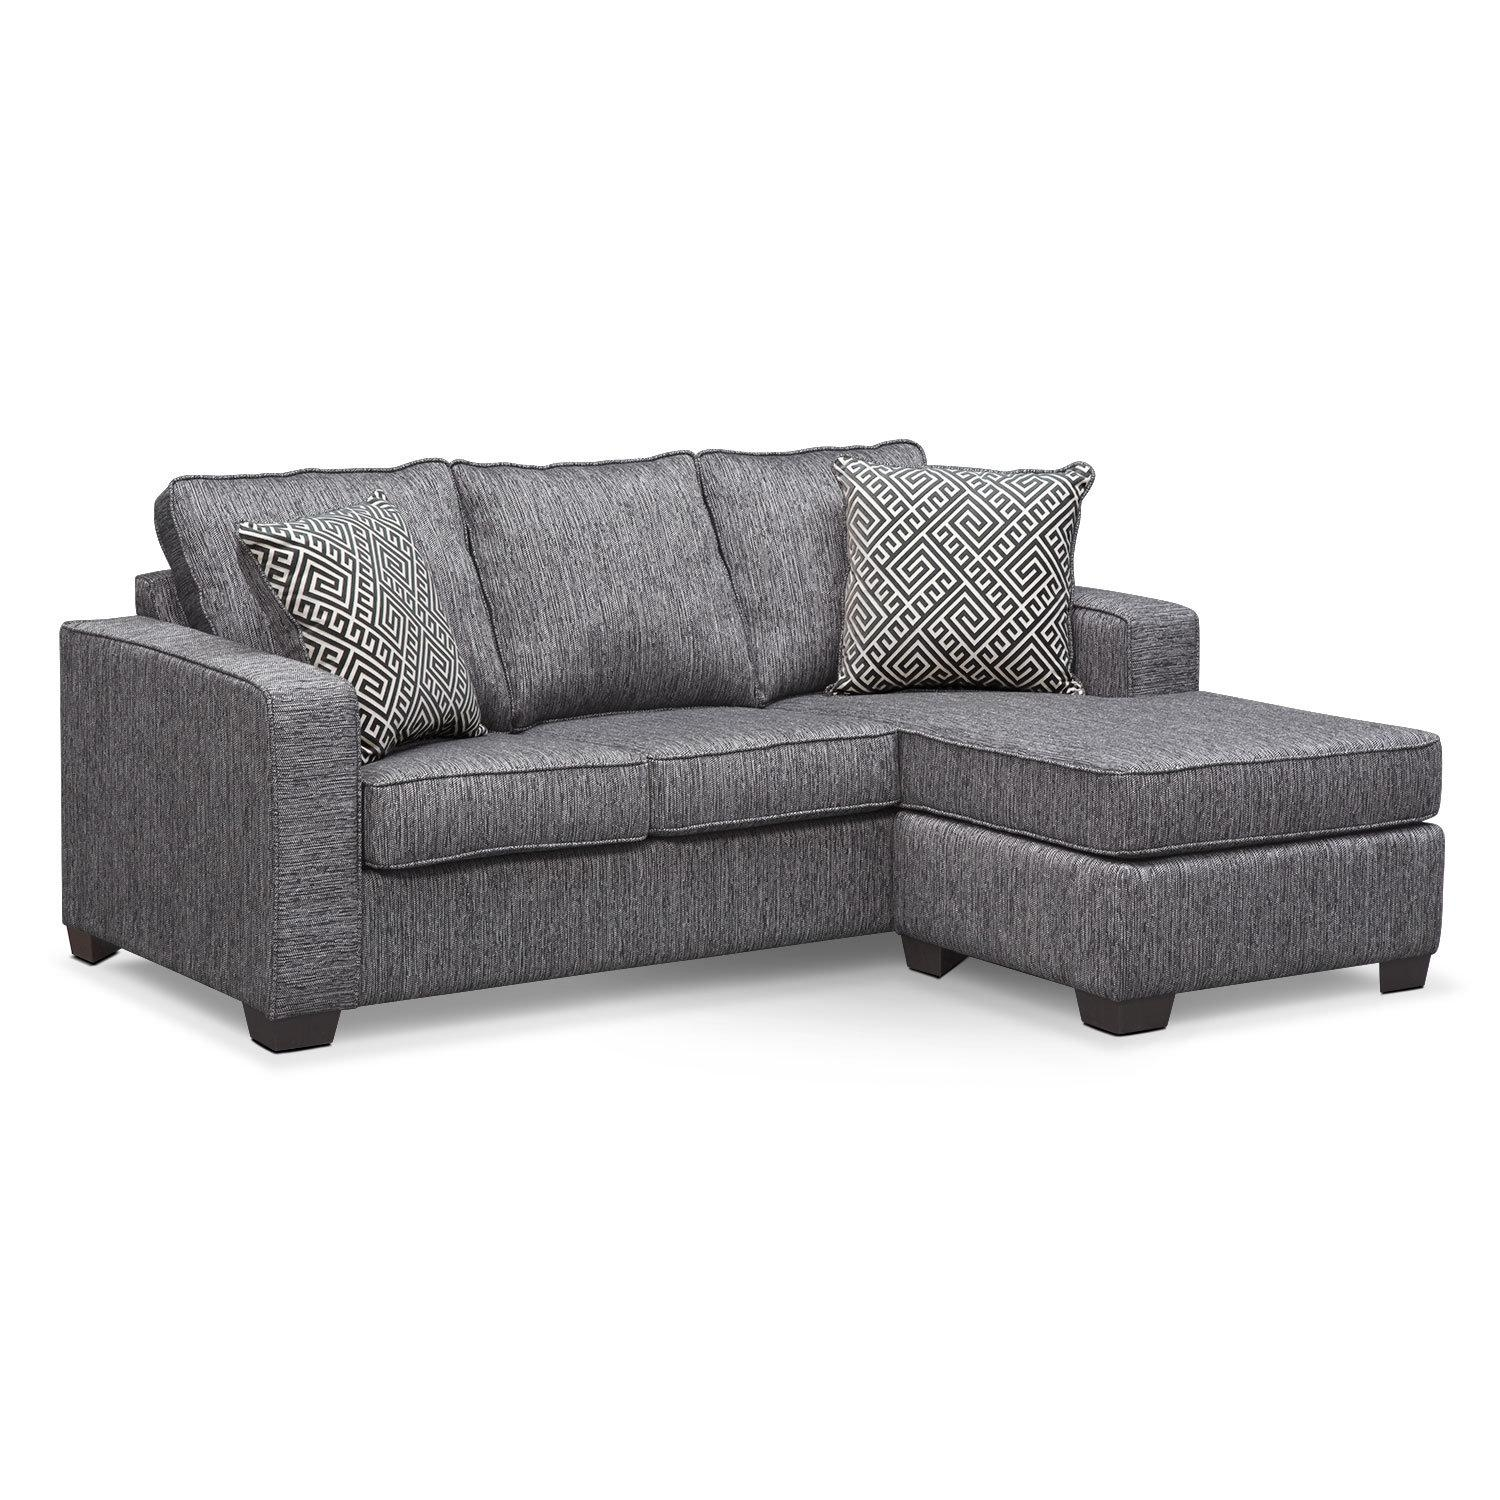 Everyday Sleeper Sofa With Concept Inspiration 38839 | Kengire Regarding Everyday Sleeper Sofas (Image 10 of 20)